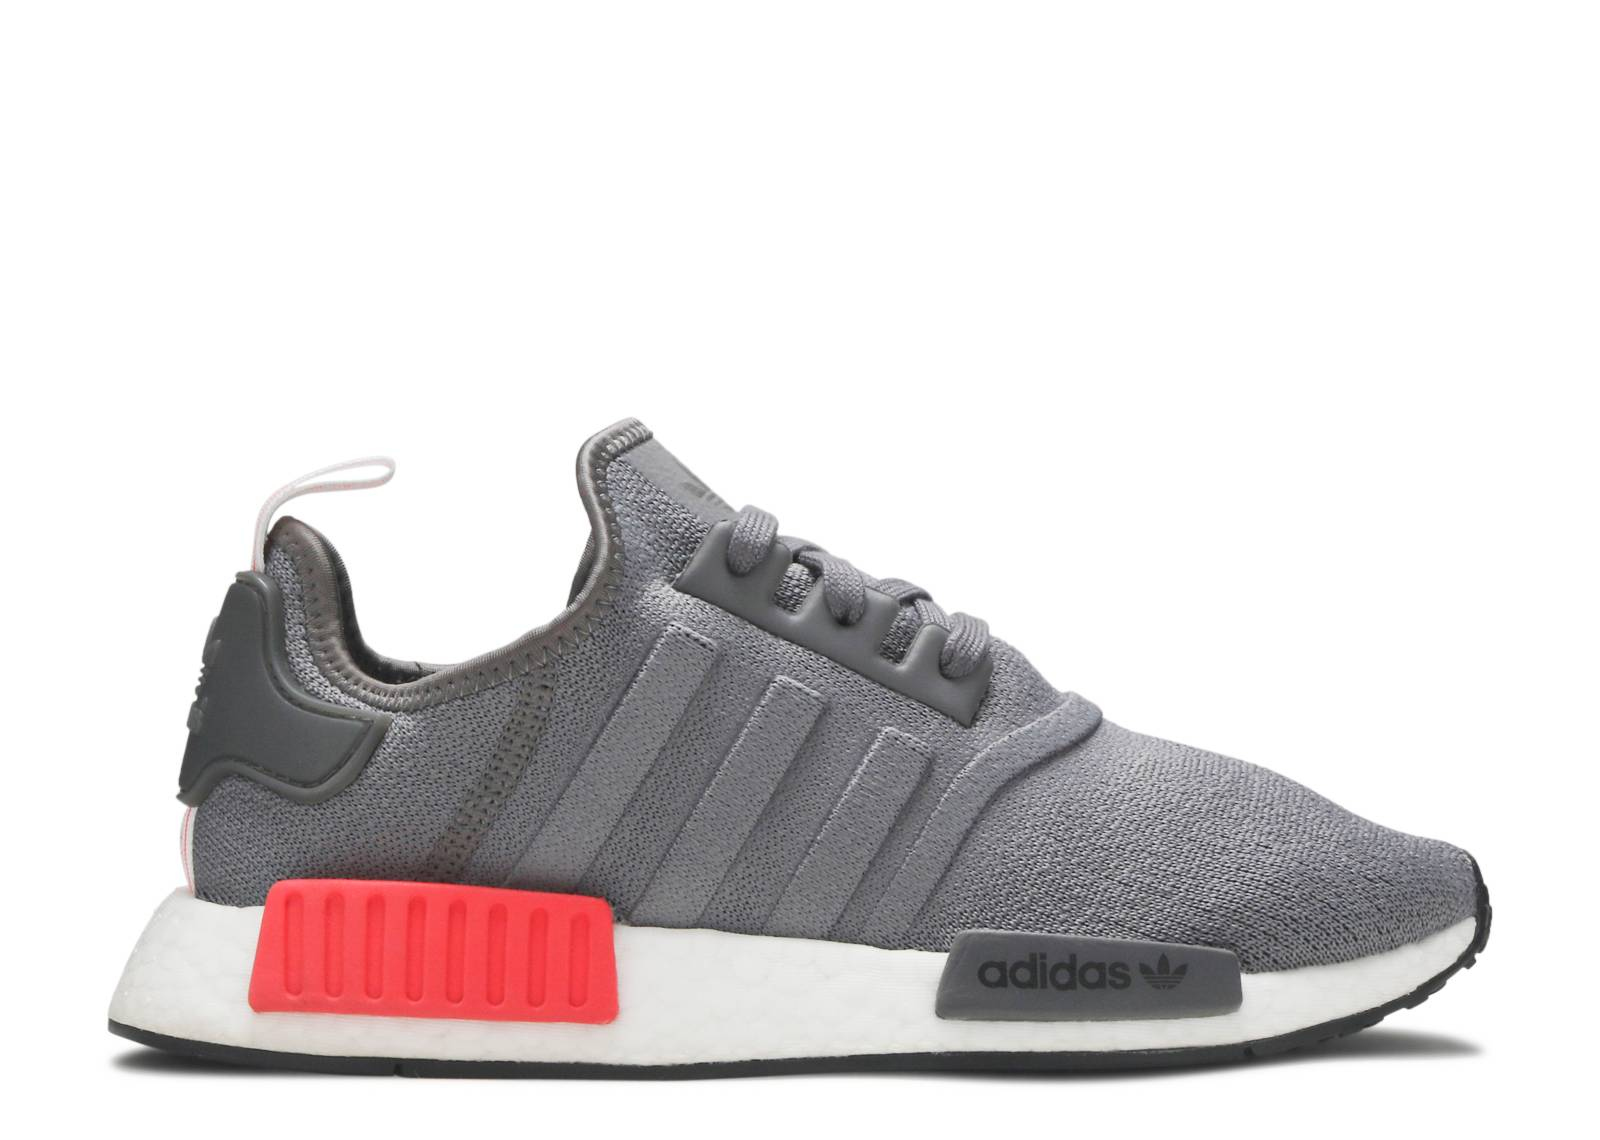 Adidas Original NMD Triple Black WOMENS Sneakers Running